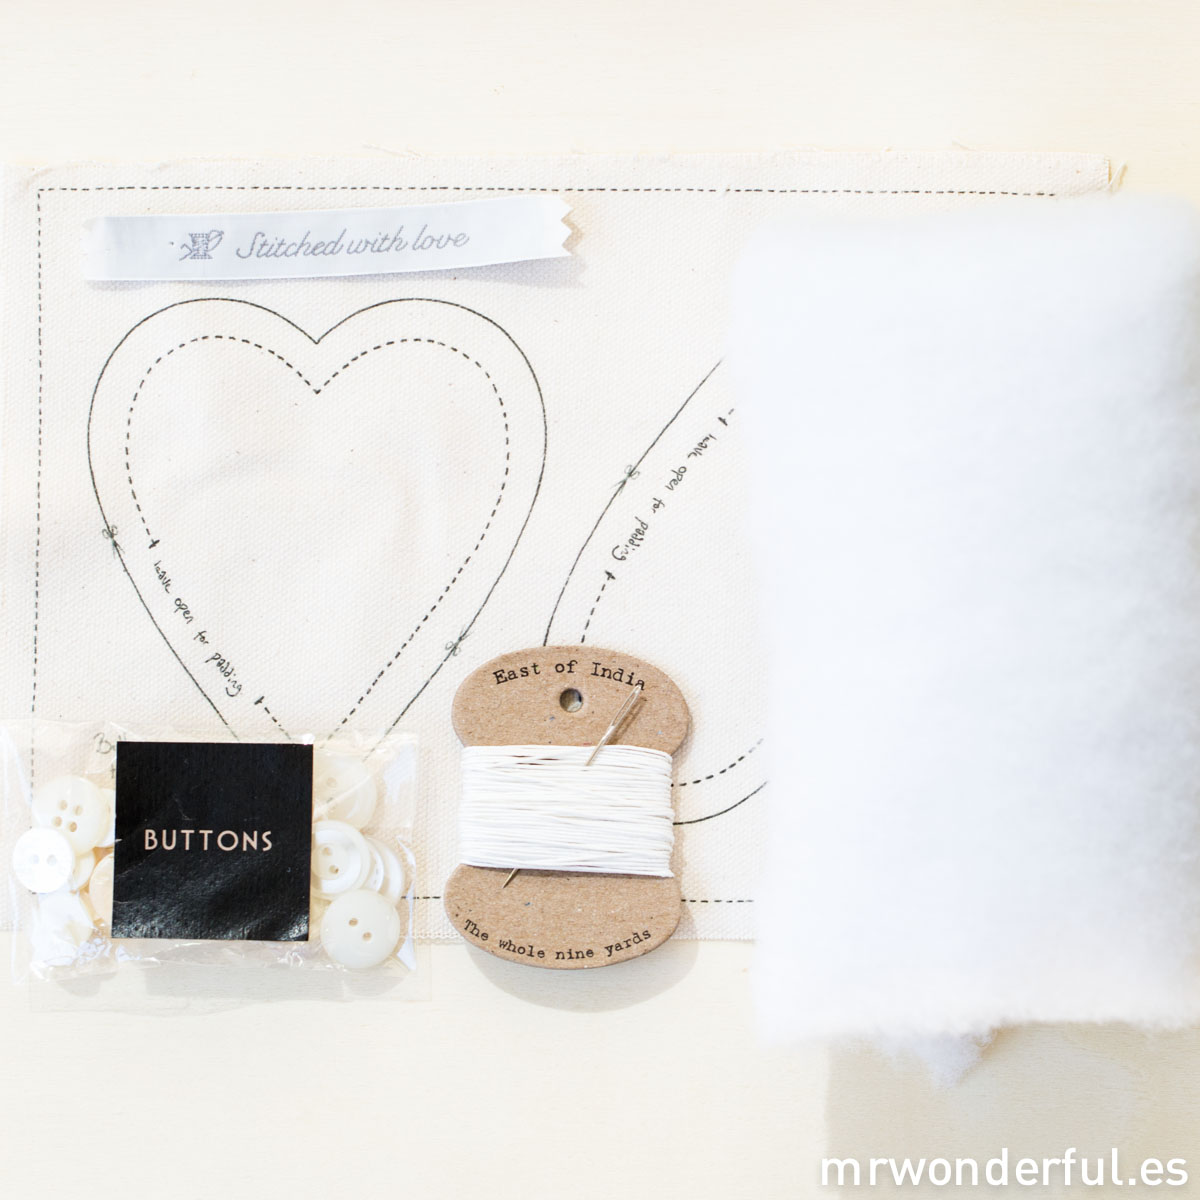 mrwonderful_3892_kit-manualidades_button-heart-20